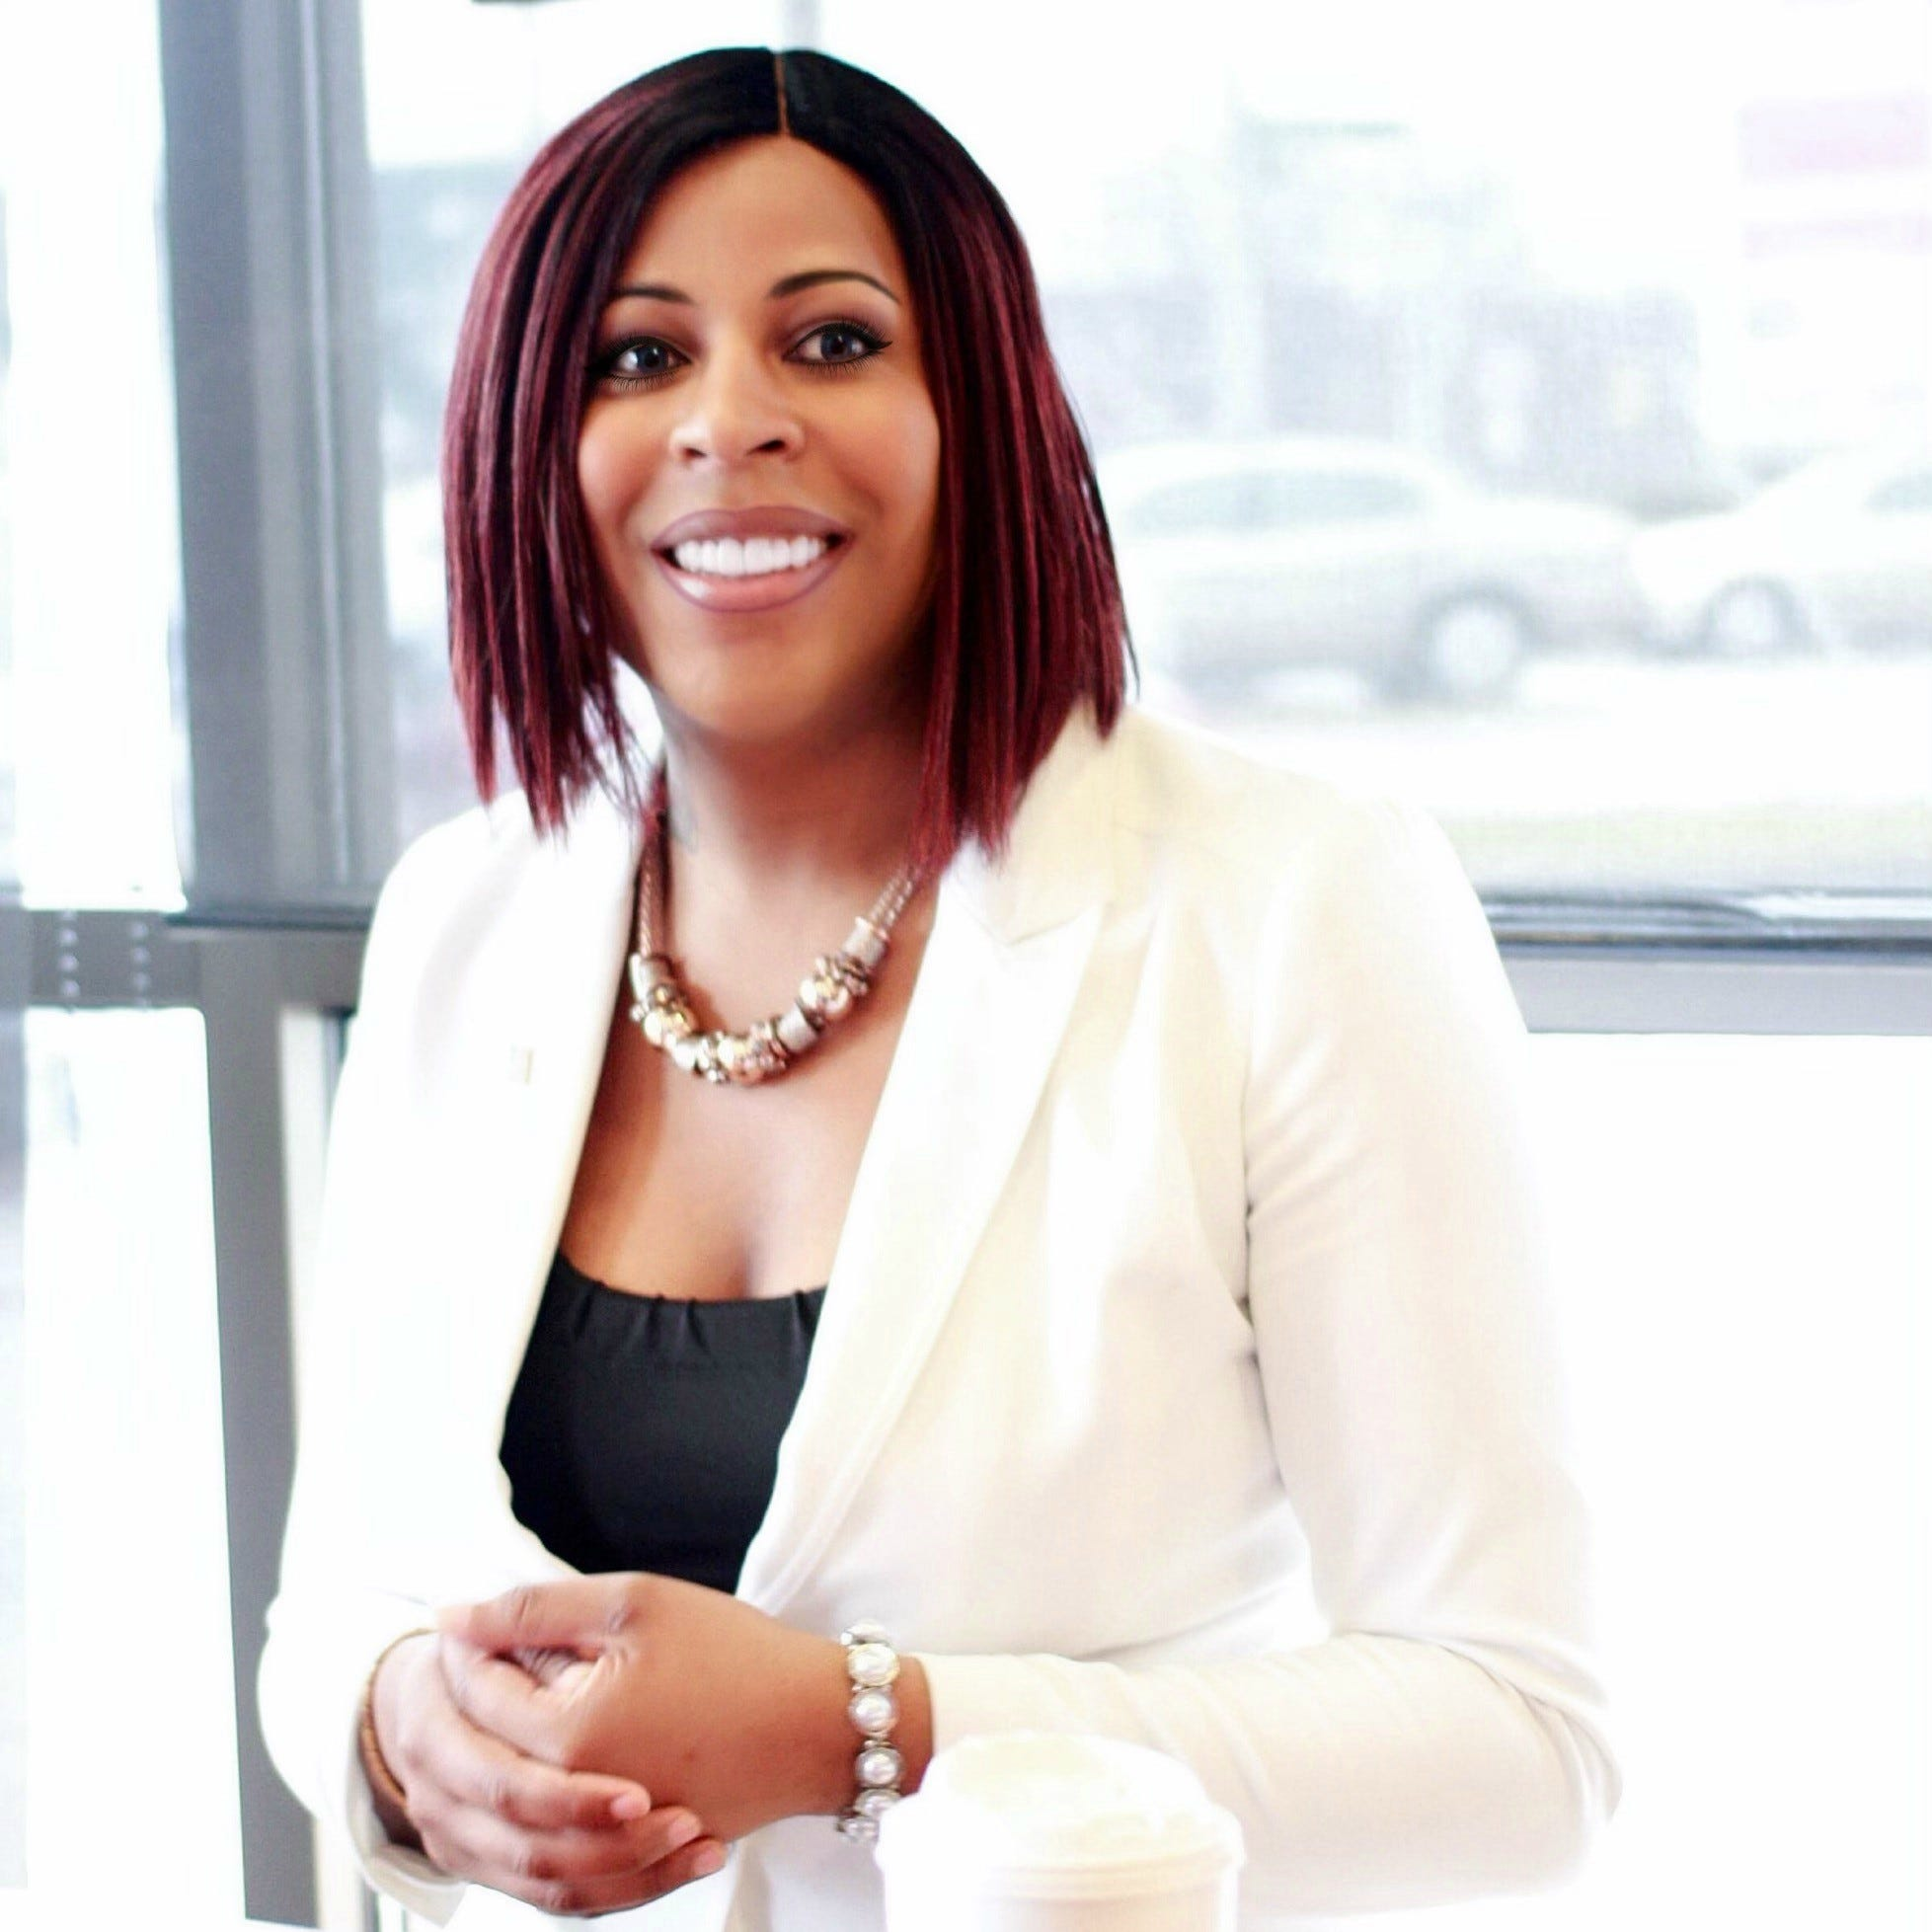 Meet presidential candidate Pam Rocker: She's transgender, wants free cars and legal weed